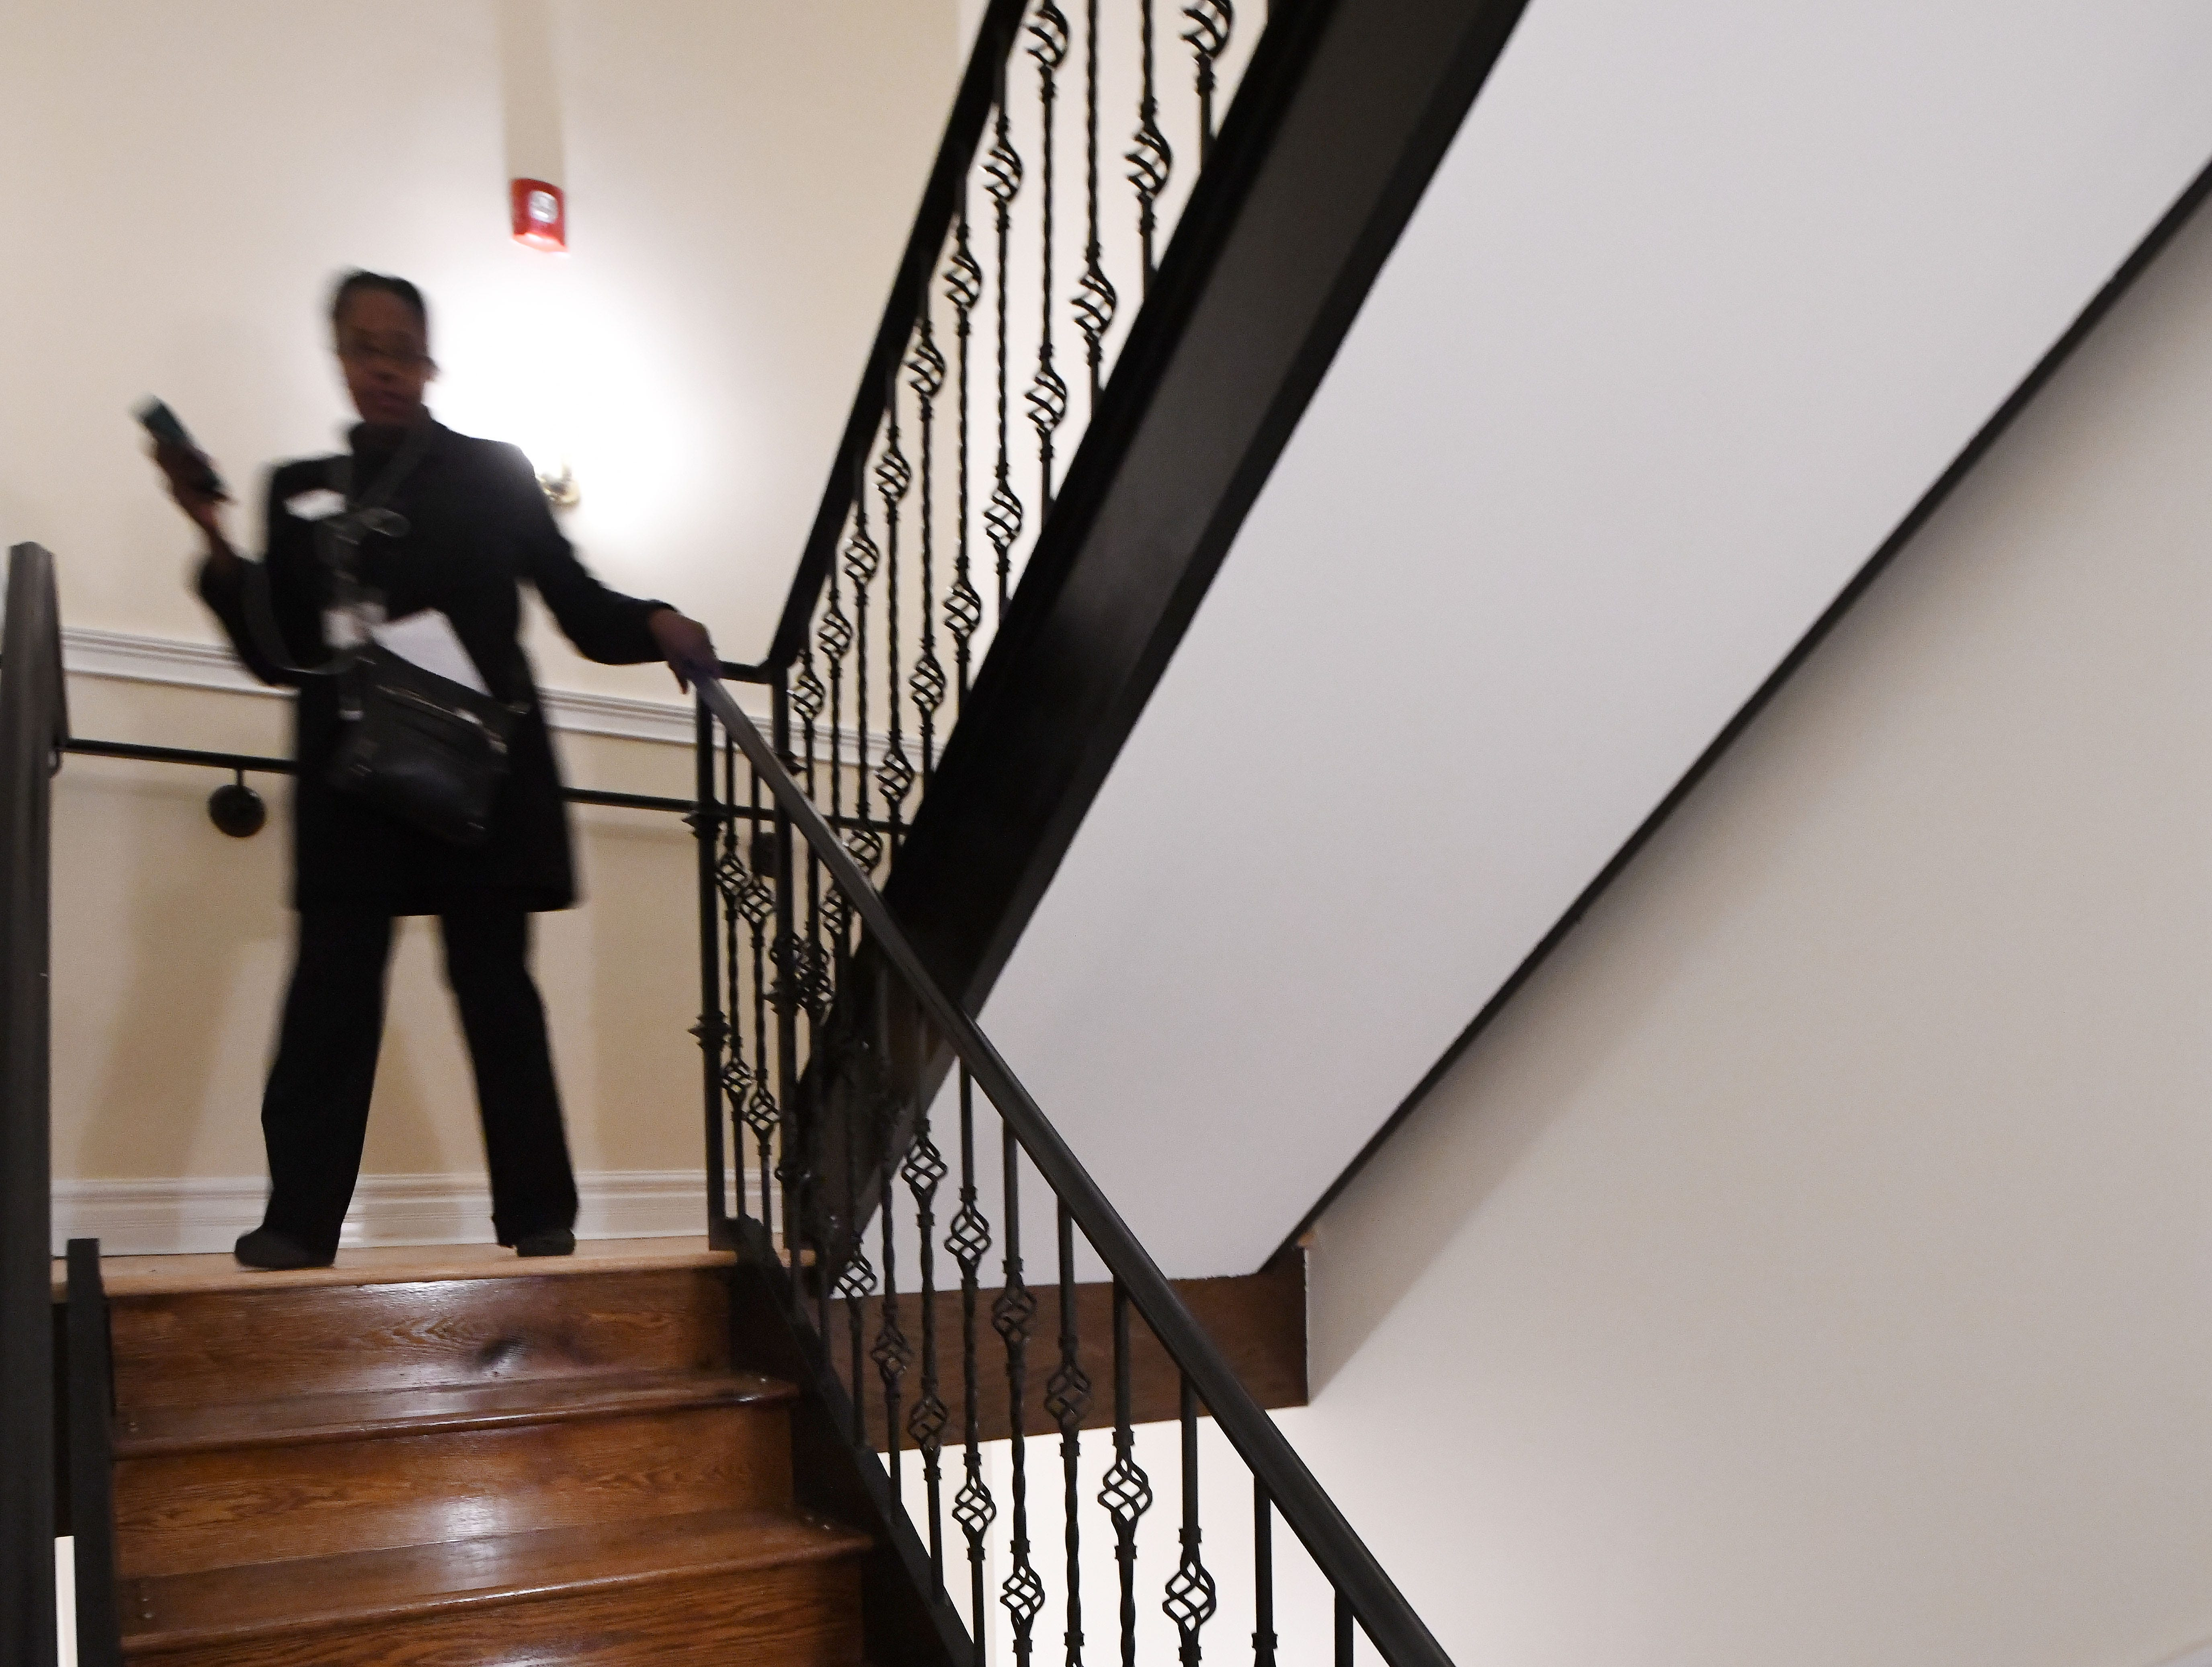 Stairway leading down to the first floor of the historic Scott Mansion.